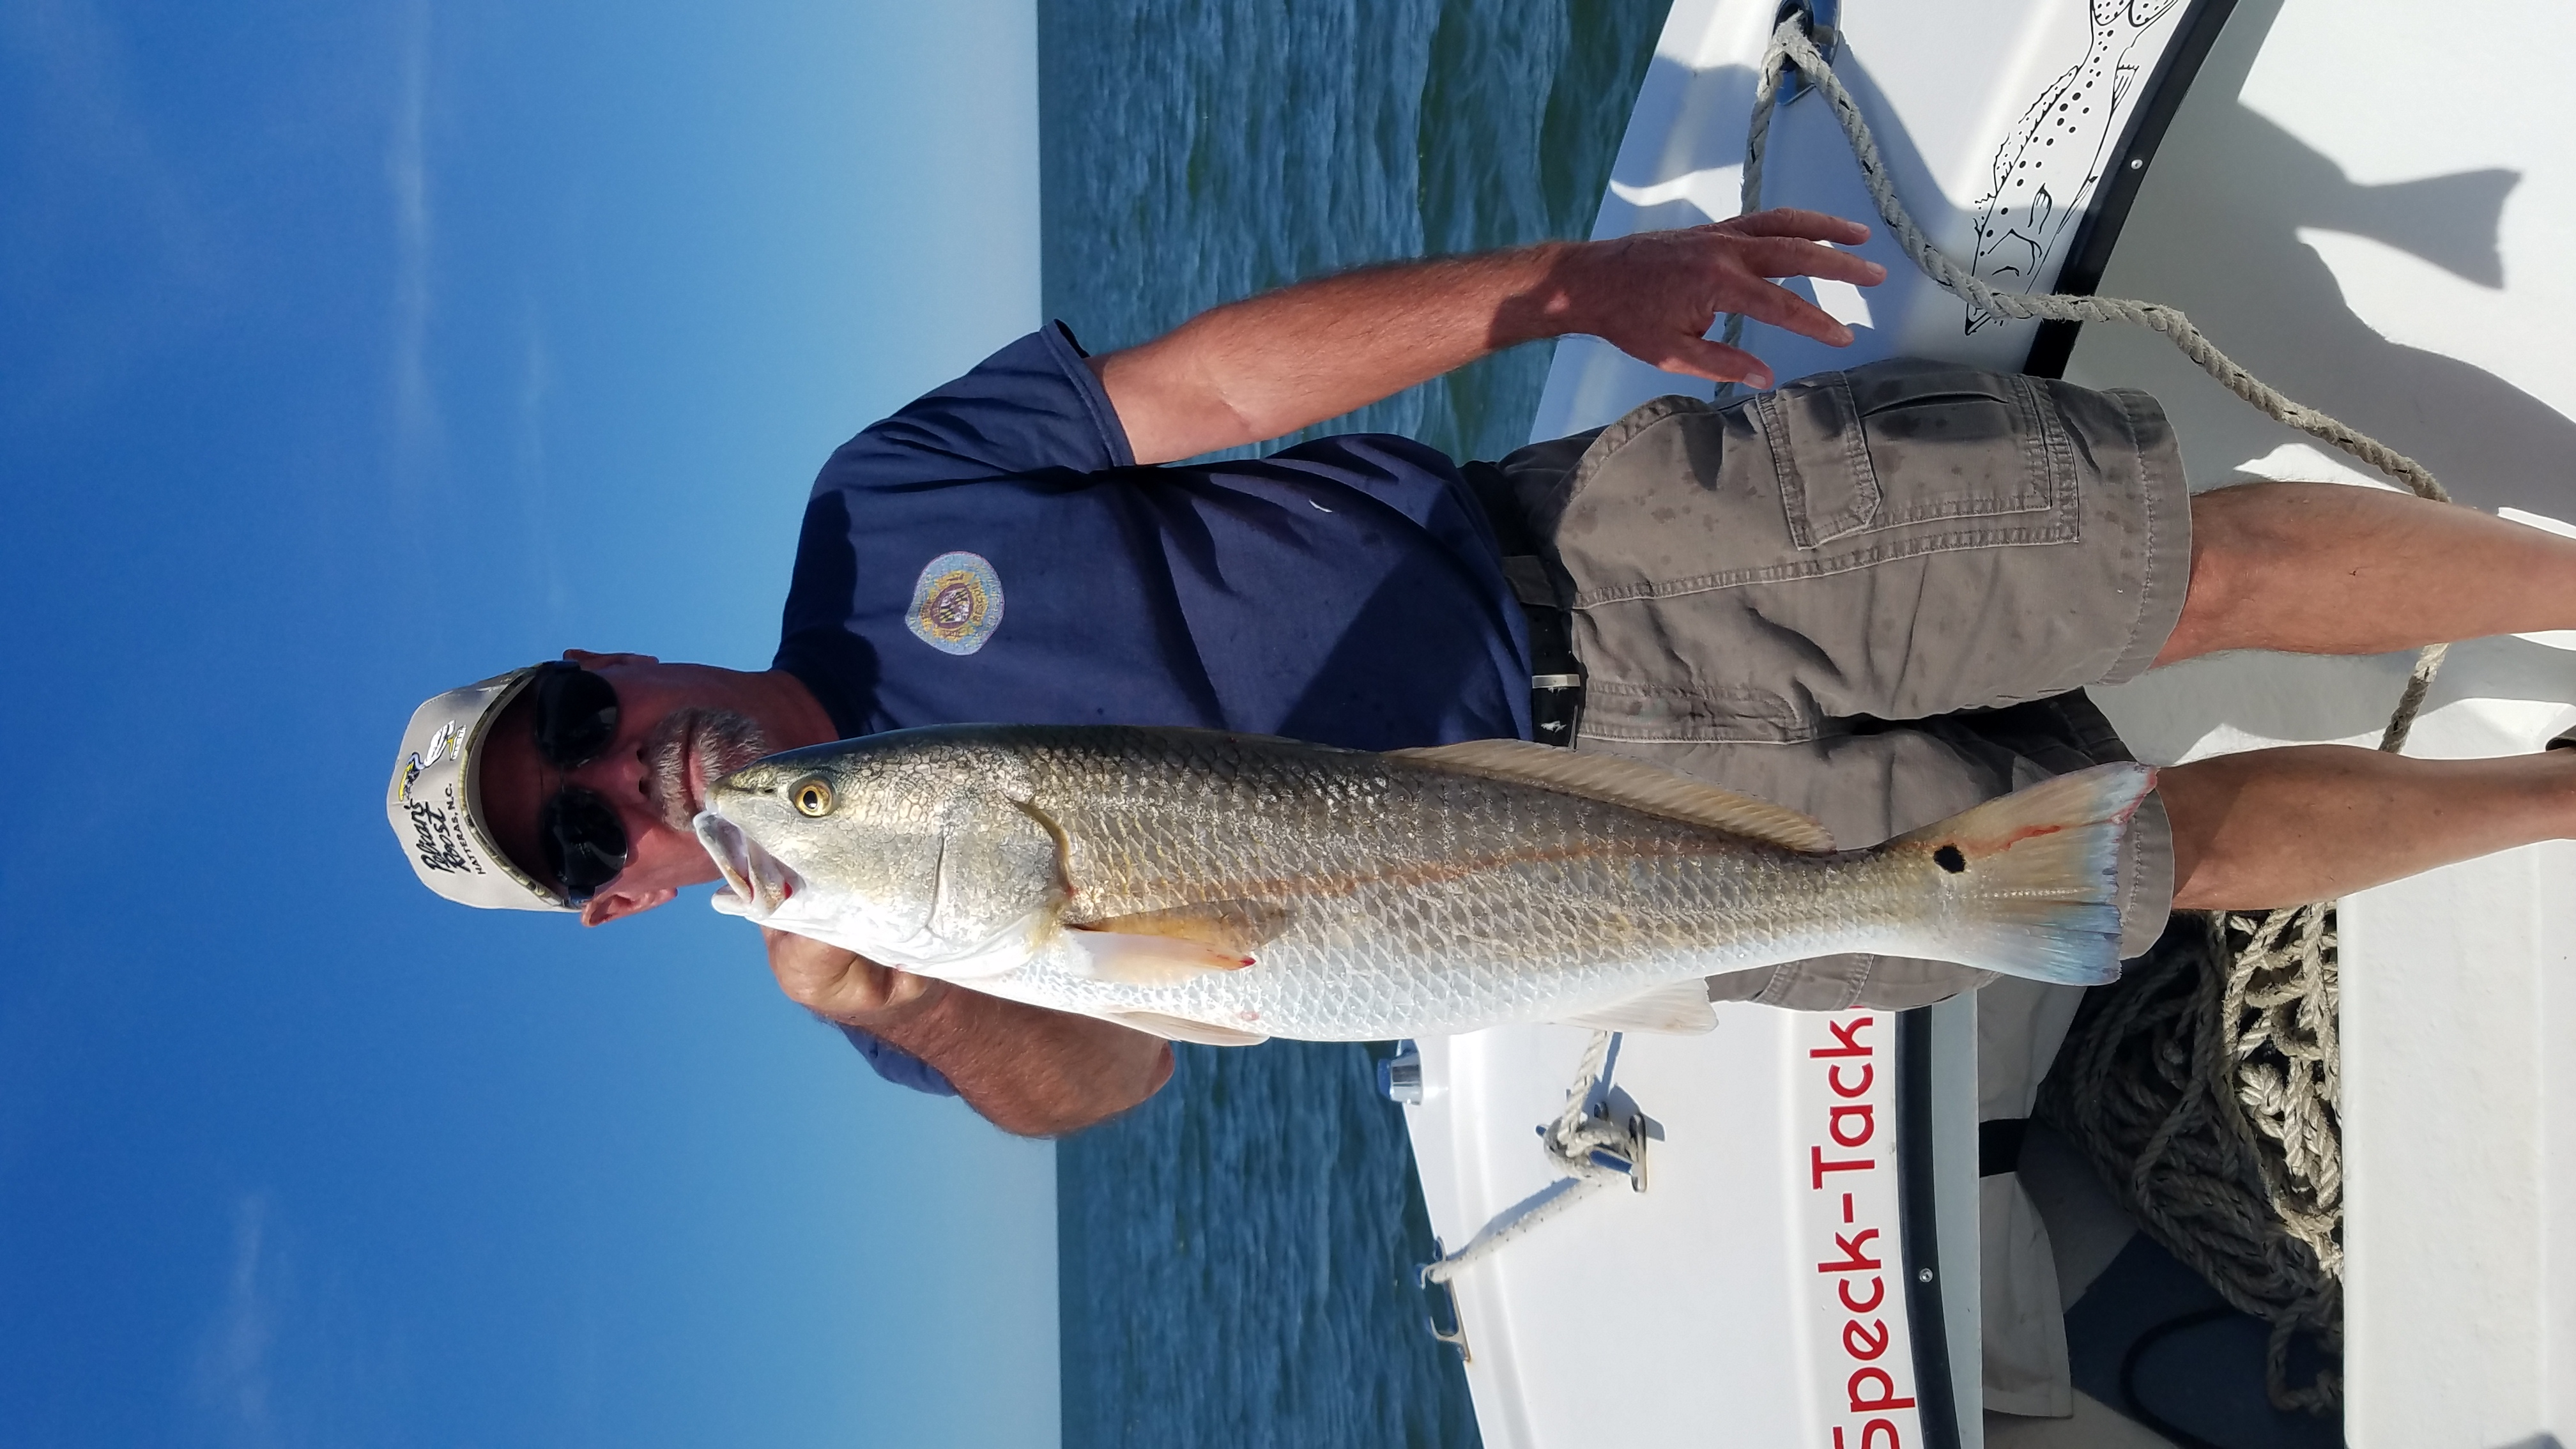 Speck-Tackler Teach's Lair Fishing Charter Inshore Hatteras Puppy Drum